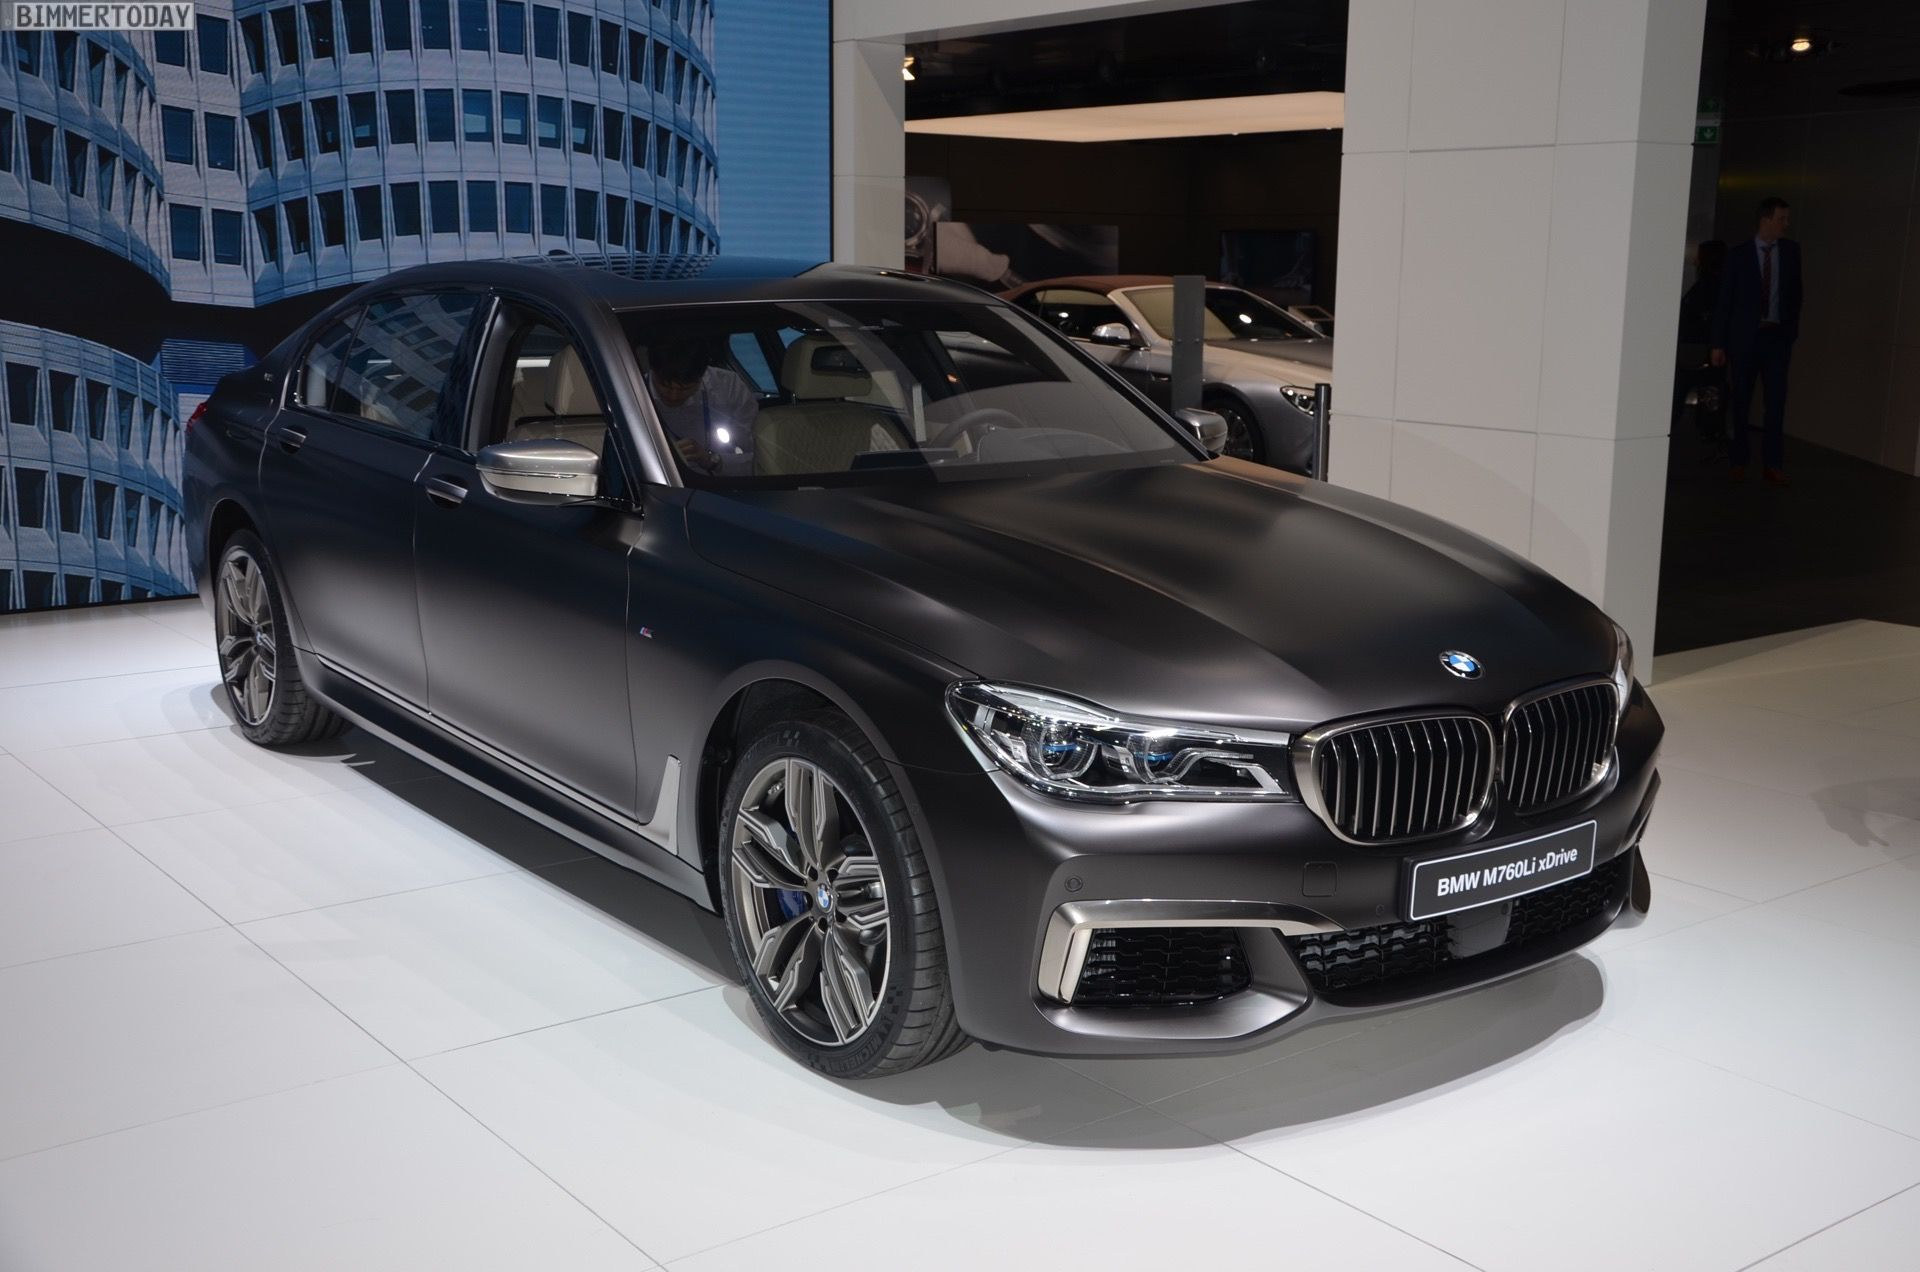 Bmw Xdrive Sedan Geneva Auto Live